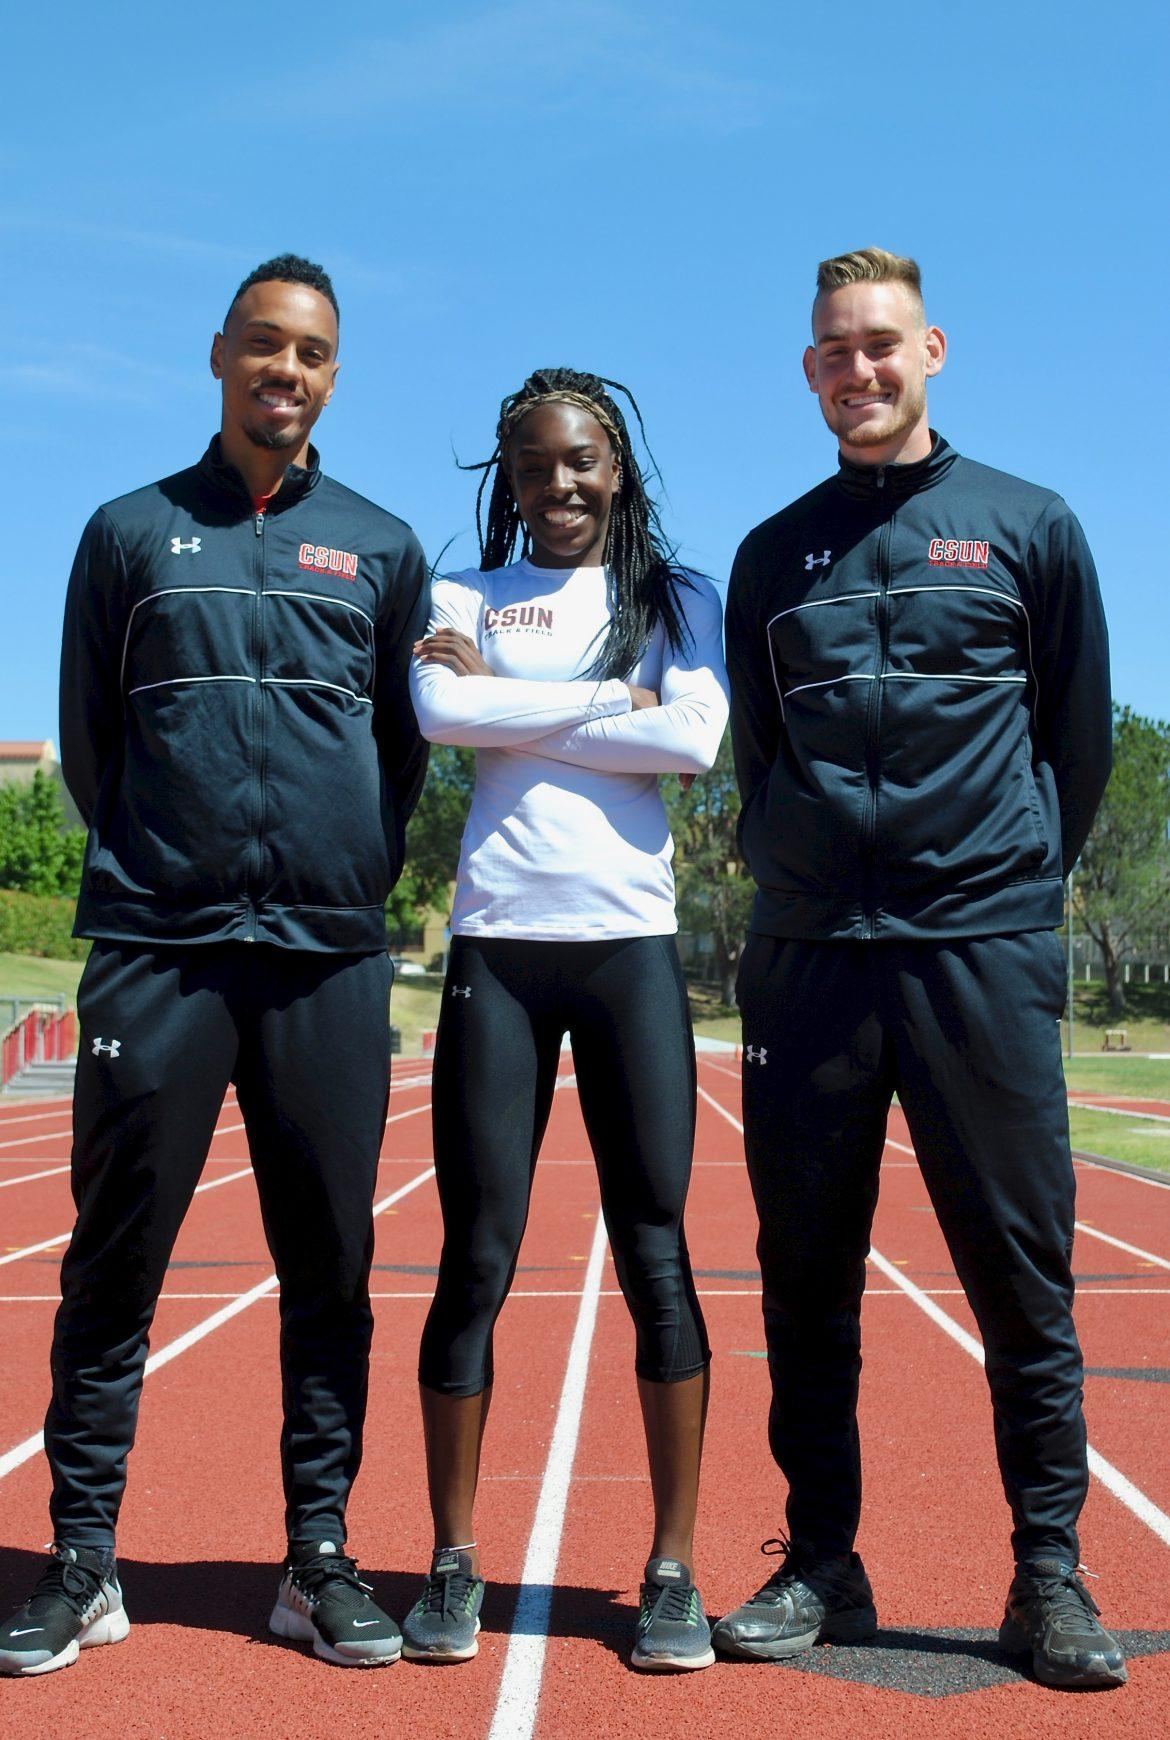 three+student+athletes+pictured+standing+on+the+track